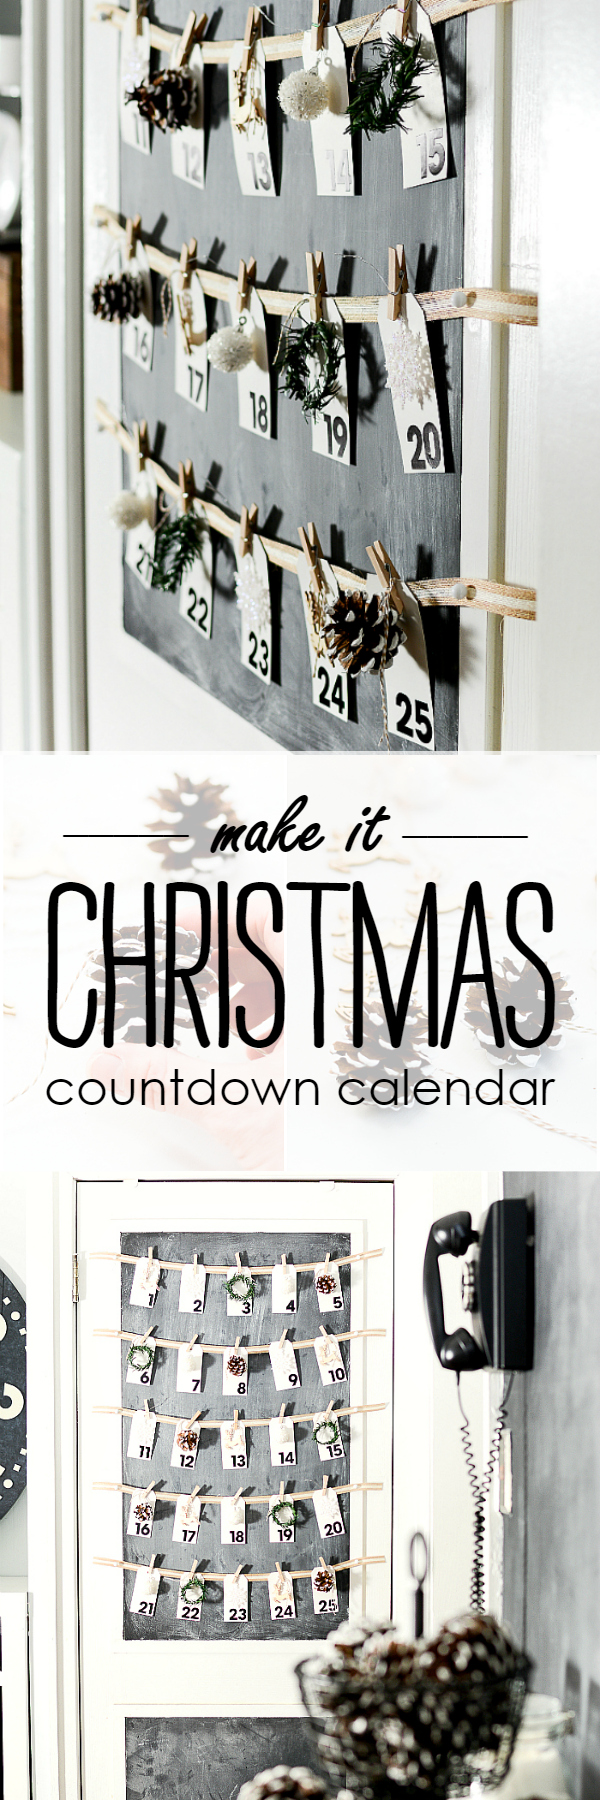 Merry Christmas Countdown Calendar - Advent Calendar DIY @It All Started With Paint www.itallstartedwithpaint.com